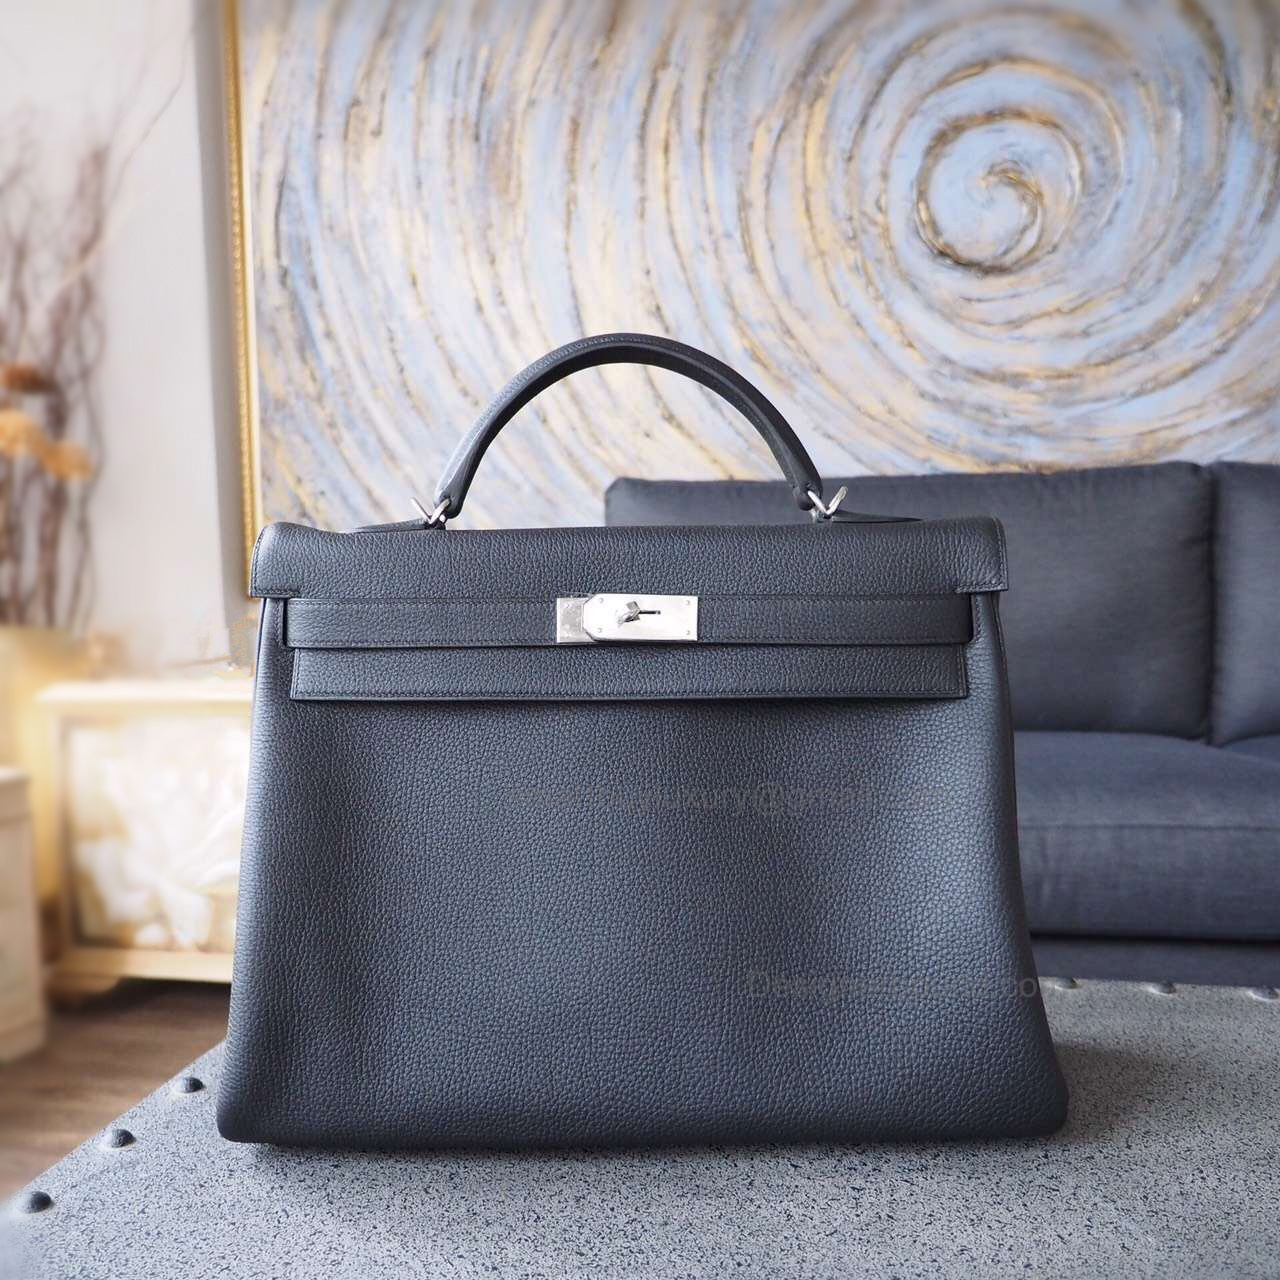 Handmade Hermes Kelly 40 Copy Bag in ck89 Noir Togo Calfskin PHW